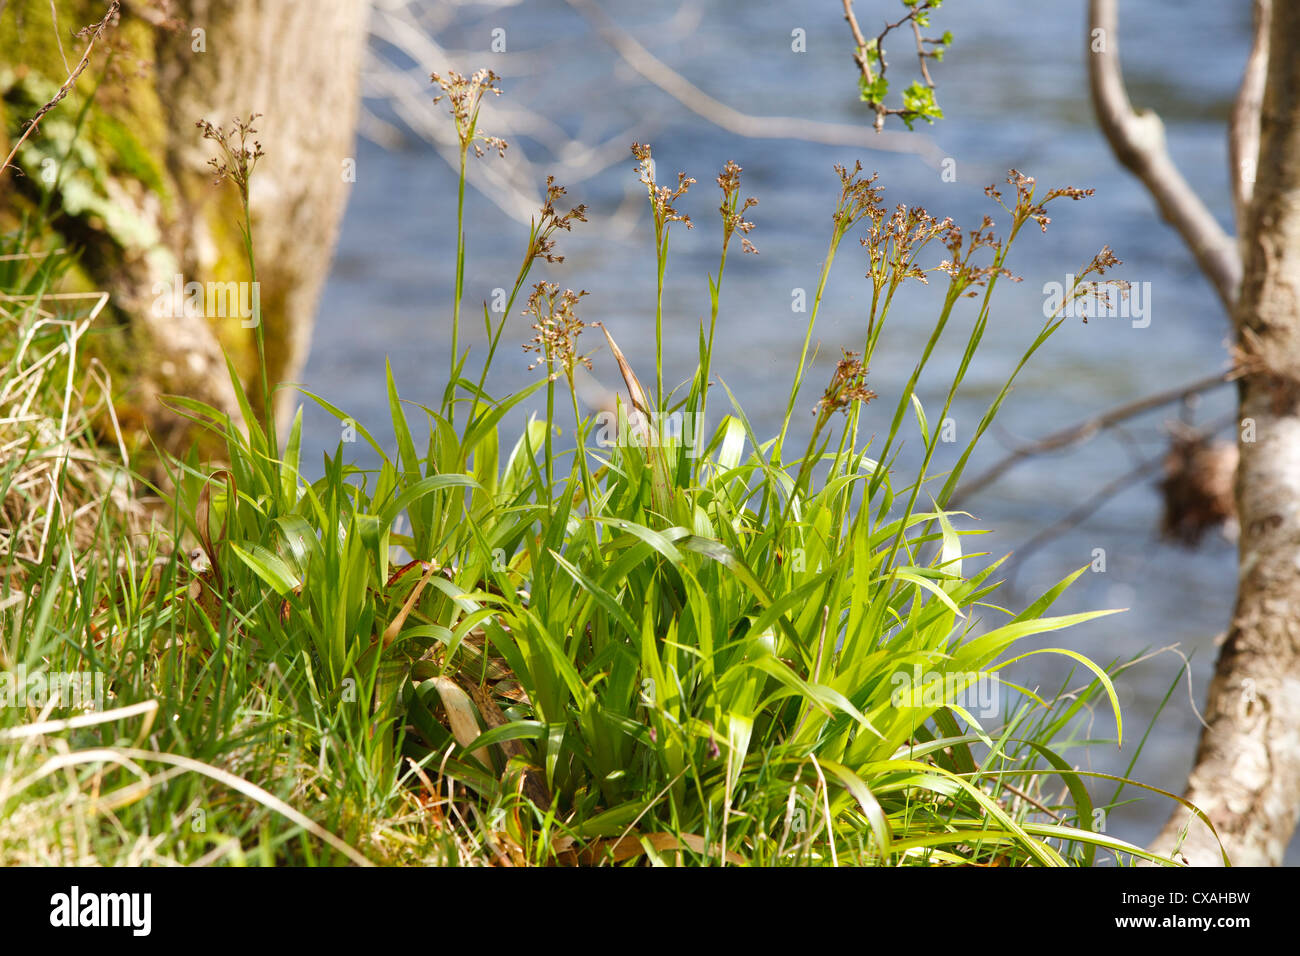 Greater Wood-rush (Luzula sylvatica) flowering beside a river. Powys, Wales. April. - Stock Image